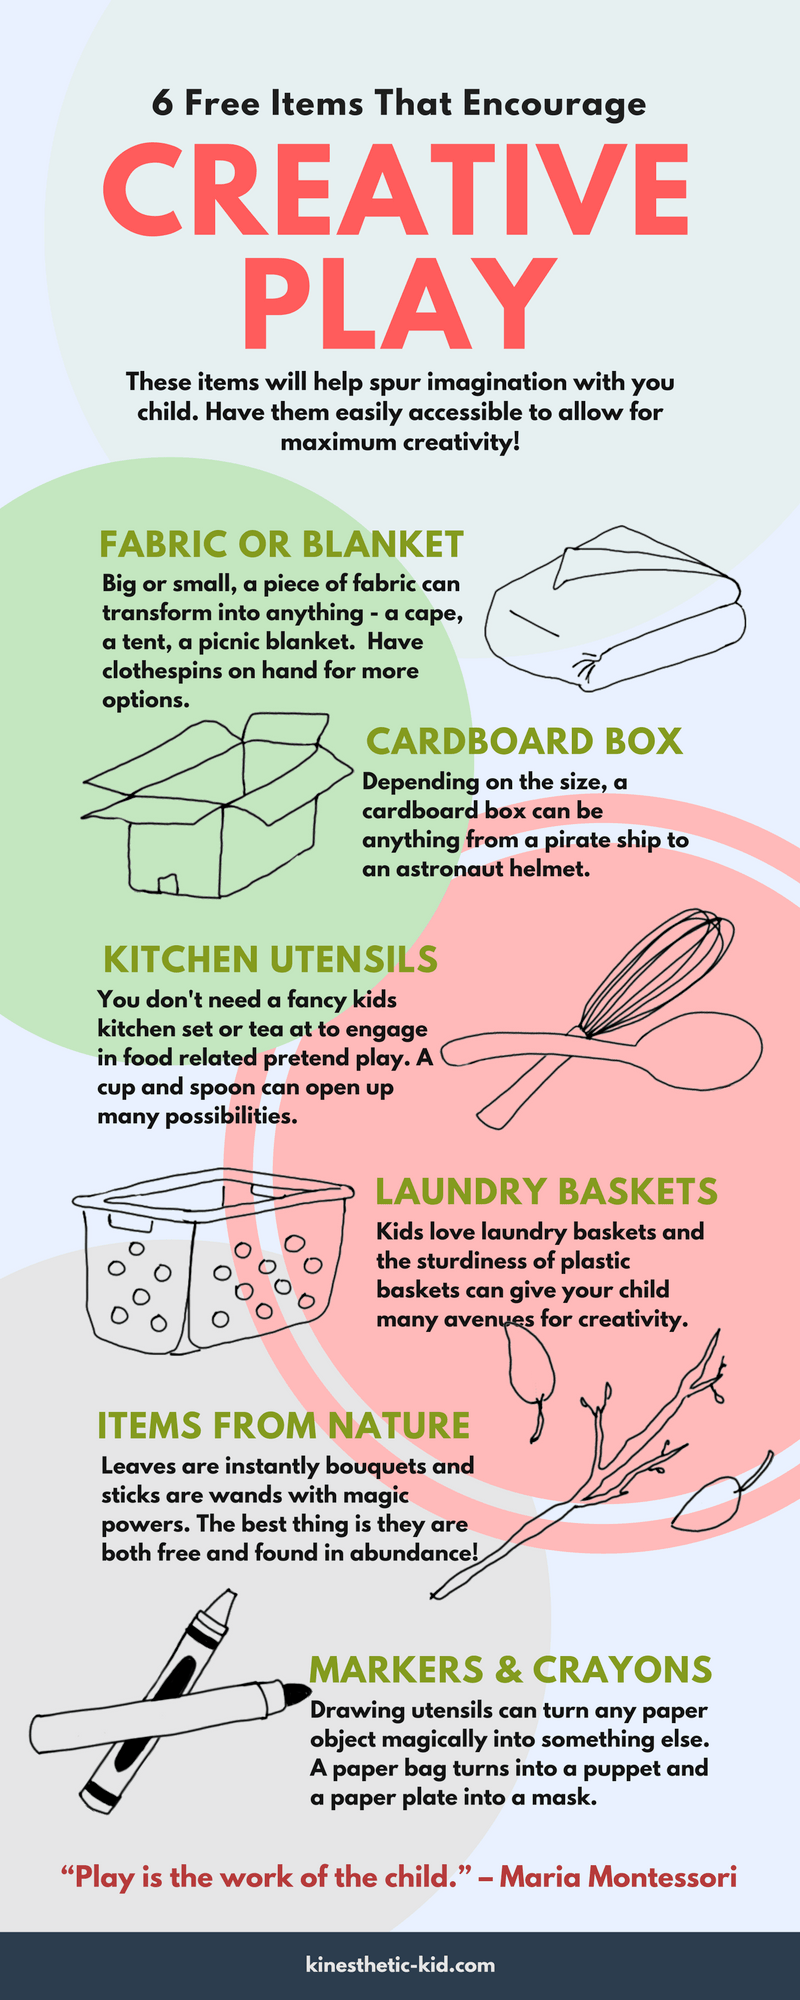 Here are 6 items to have on hand to encourage creative play with your children.